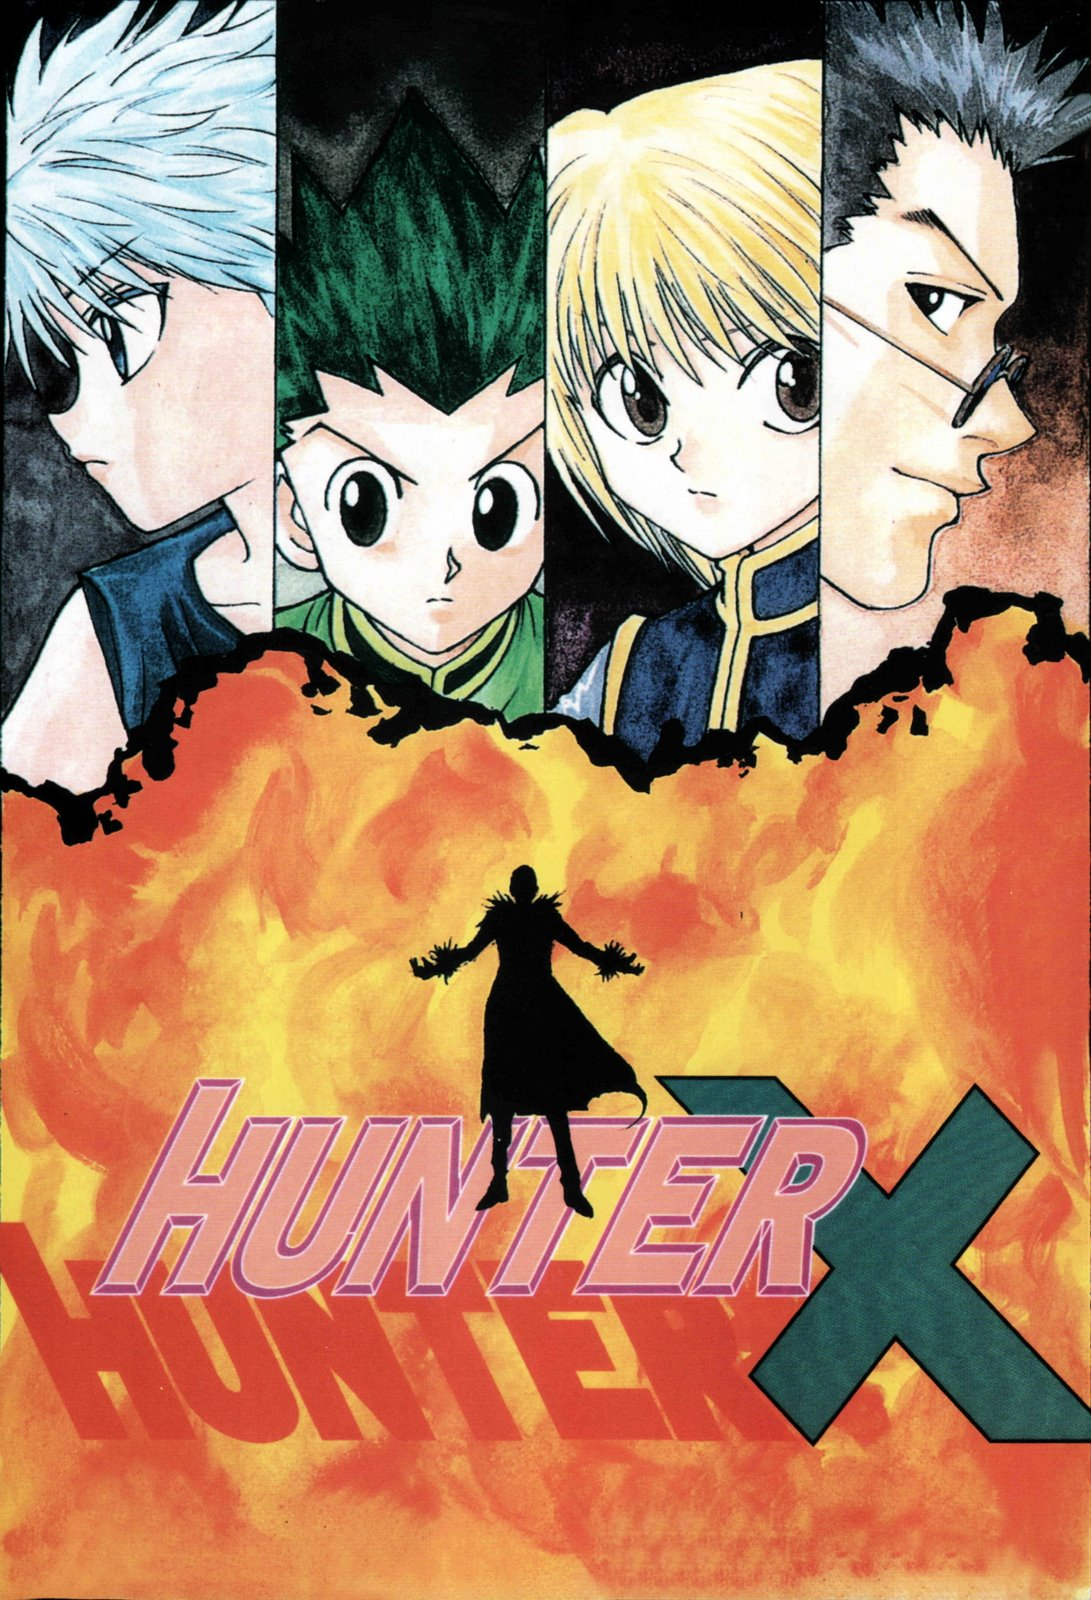 Anime Art Hunter X Hunter Gallery Of Arts And Crafts